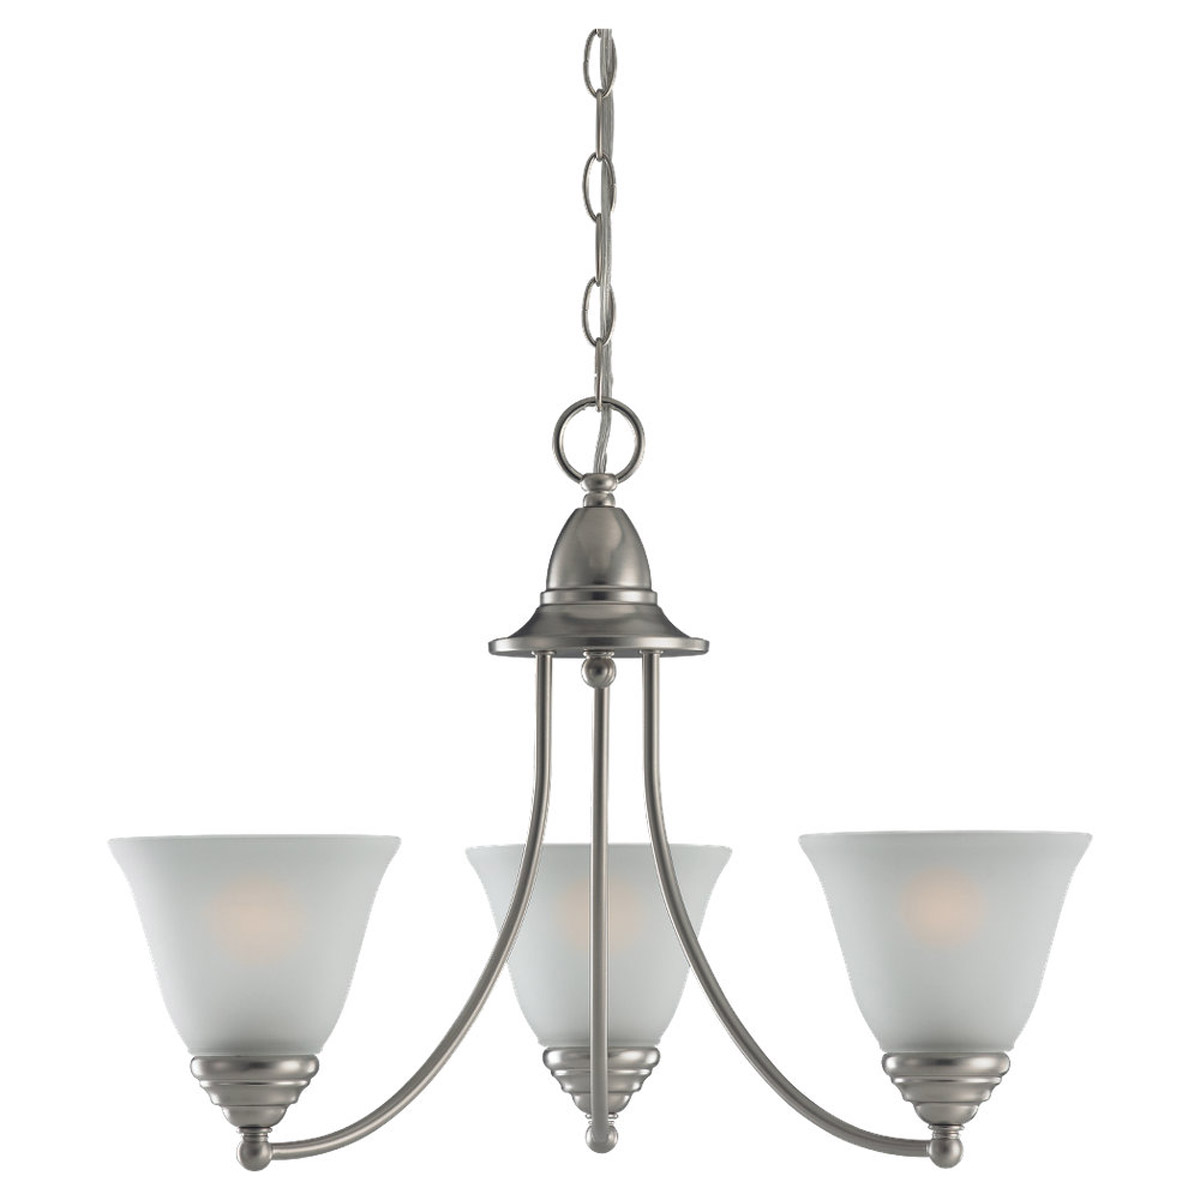 Sea Gull Lighting Albany 3 Light Chandelier in Brushed Nickel 31575-962